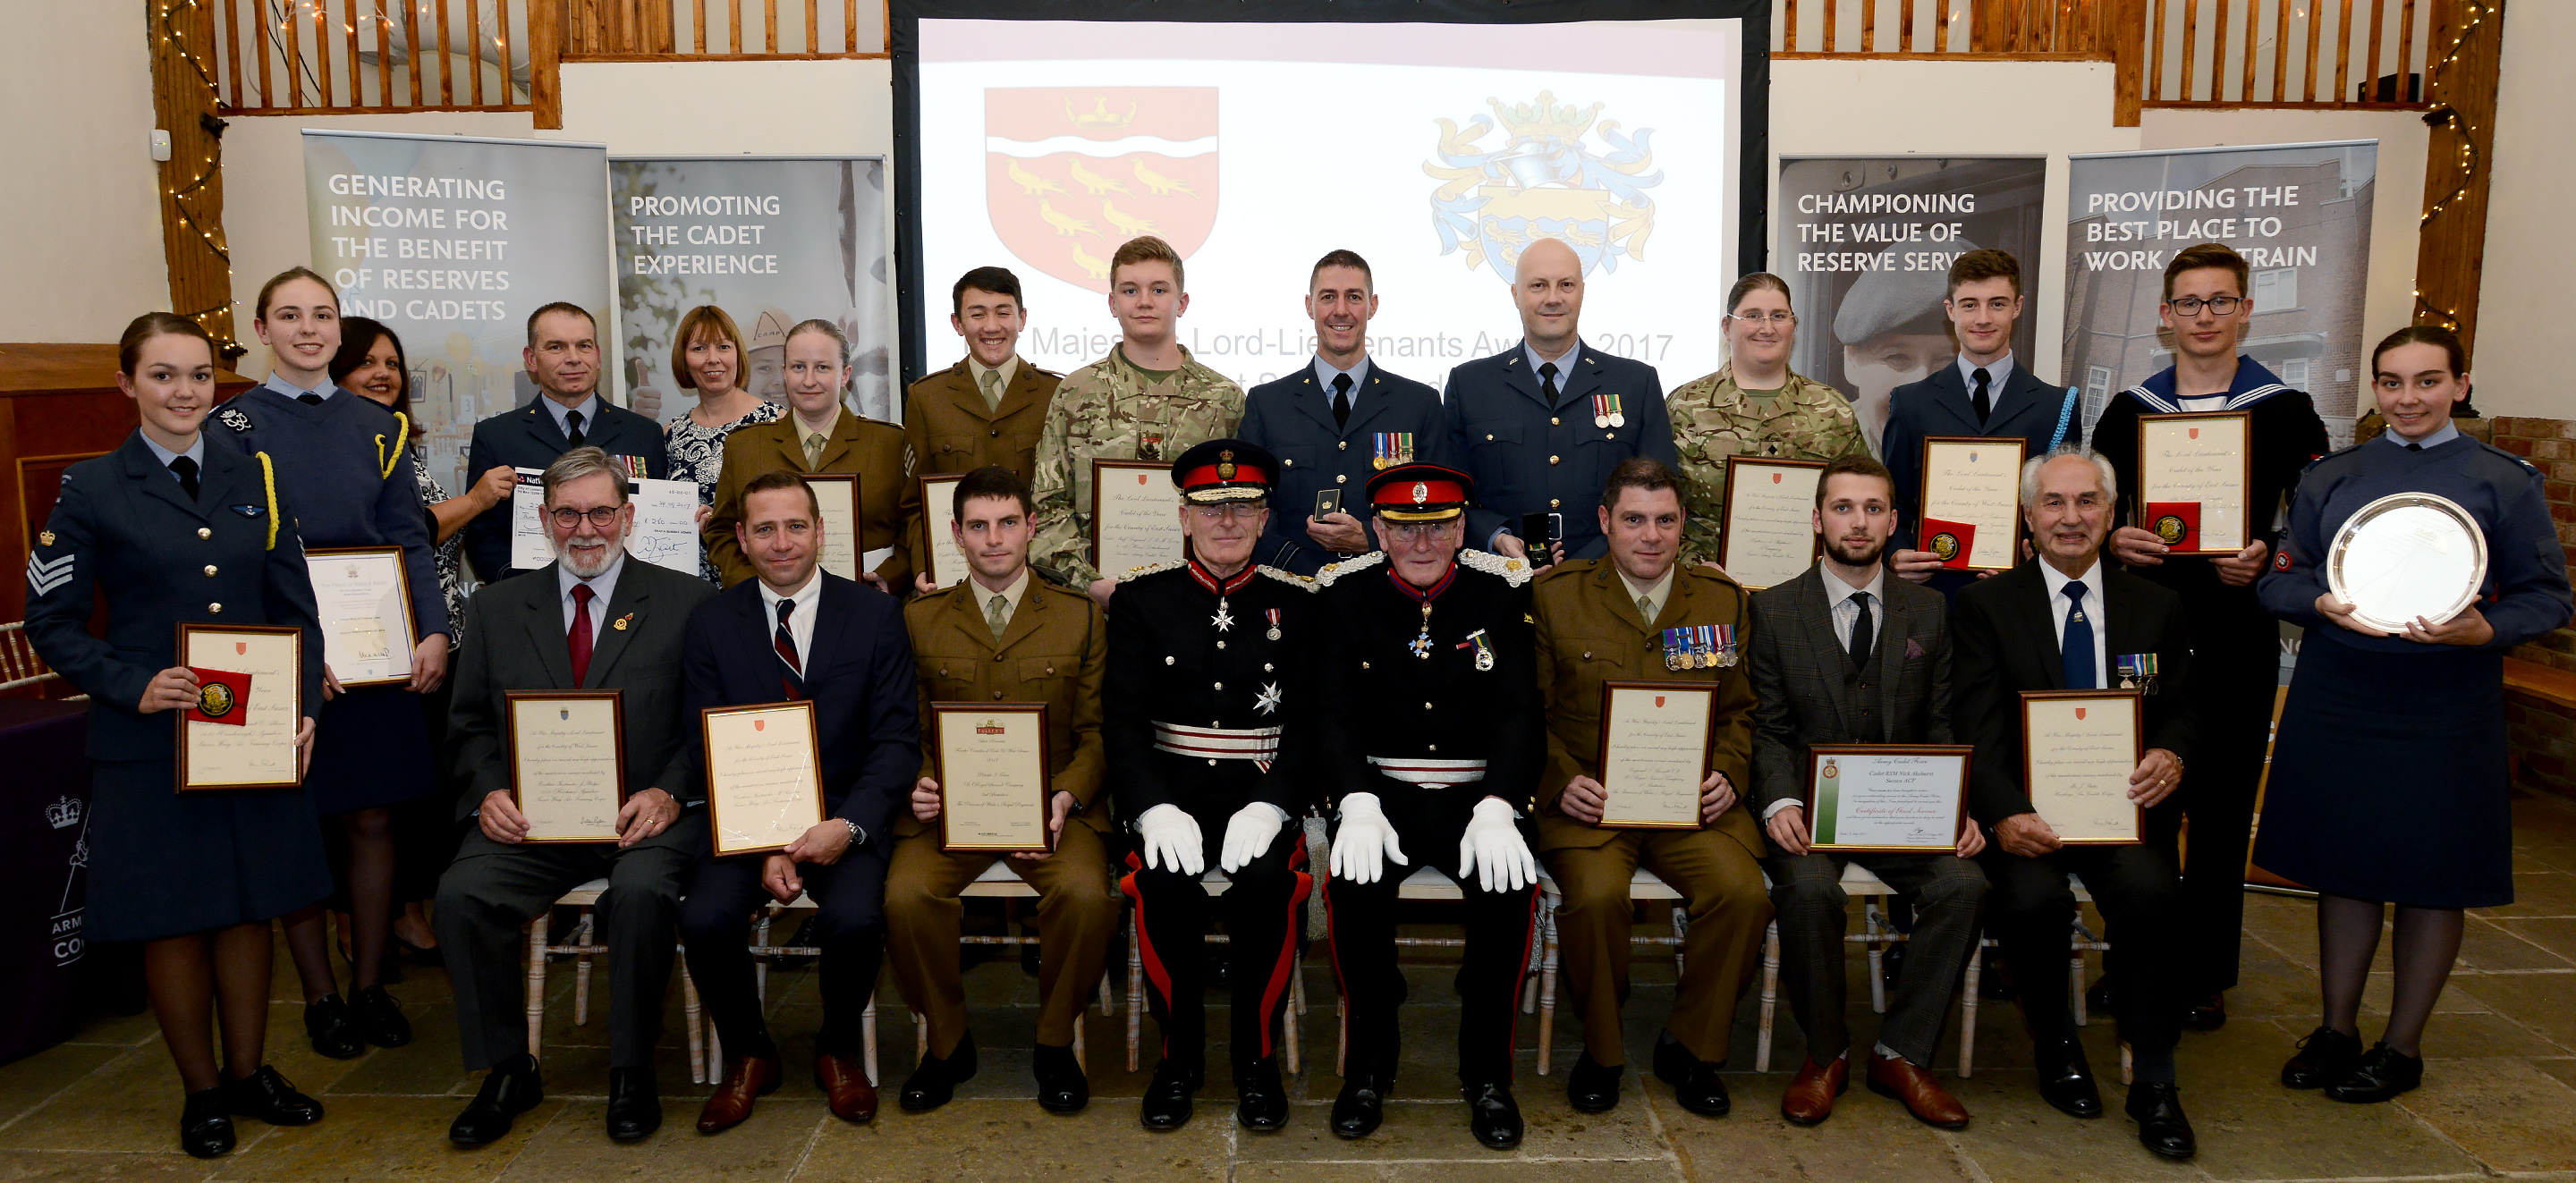 East & West Sussex Lord-Lieutenant's Awards 2017